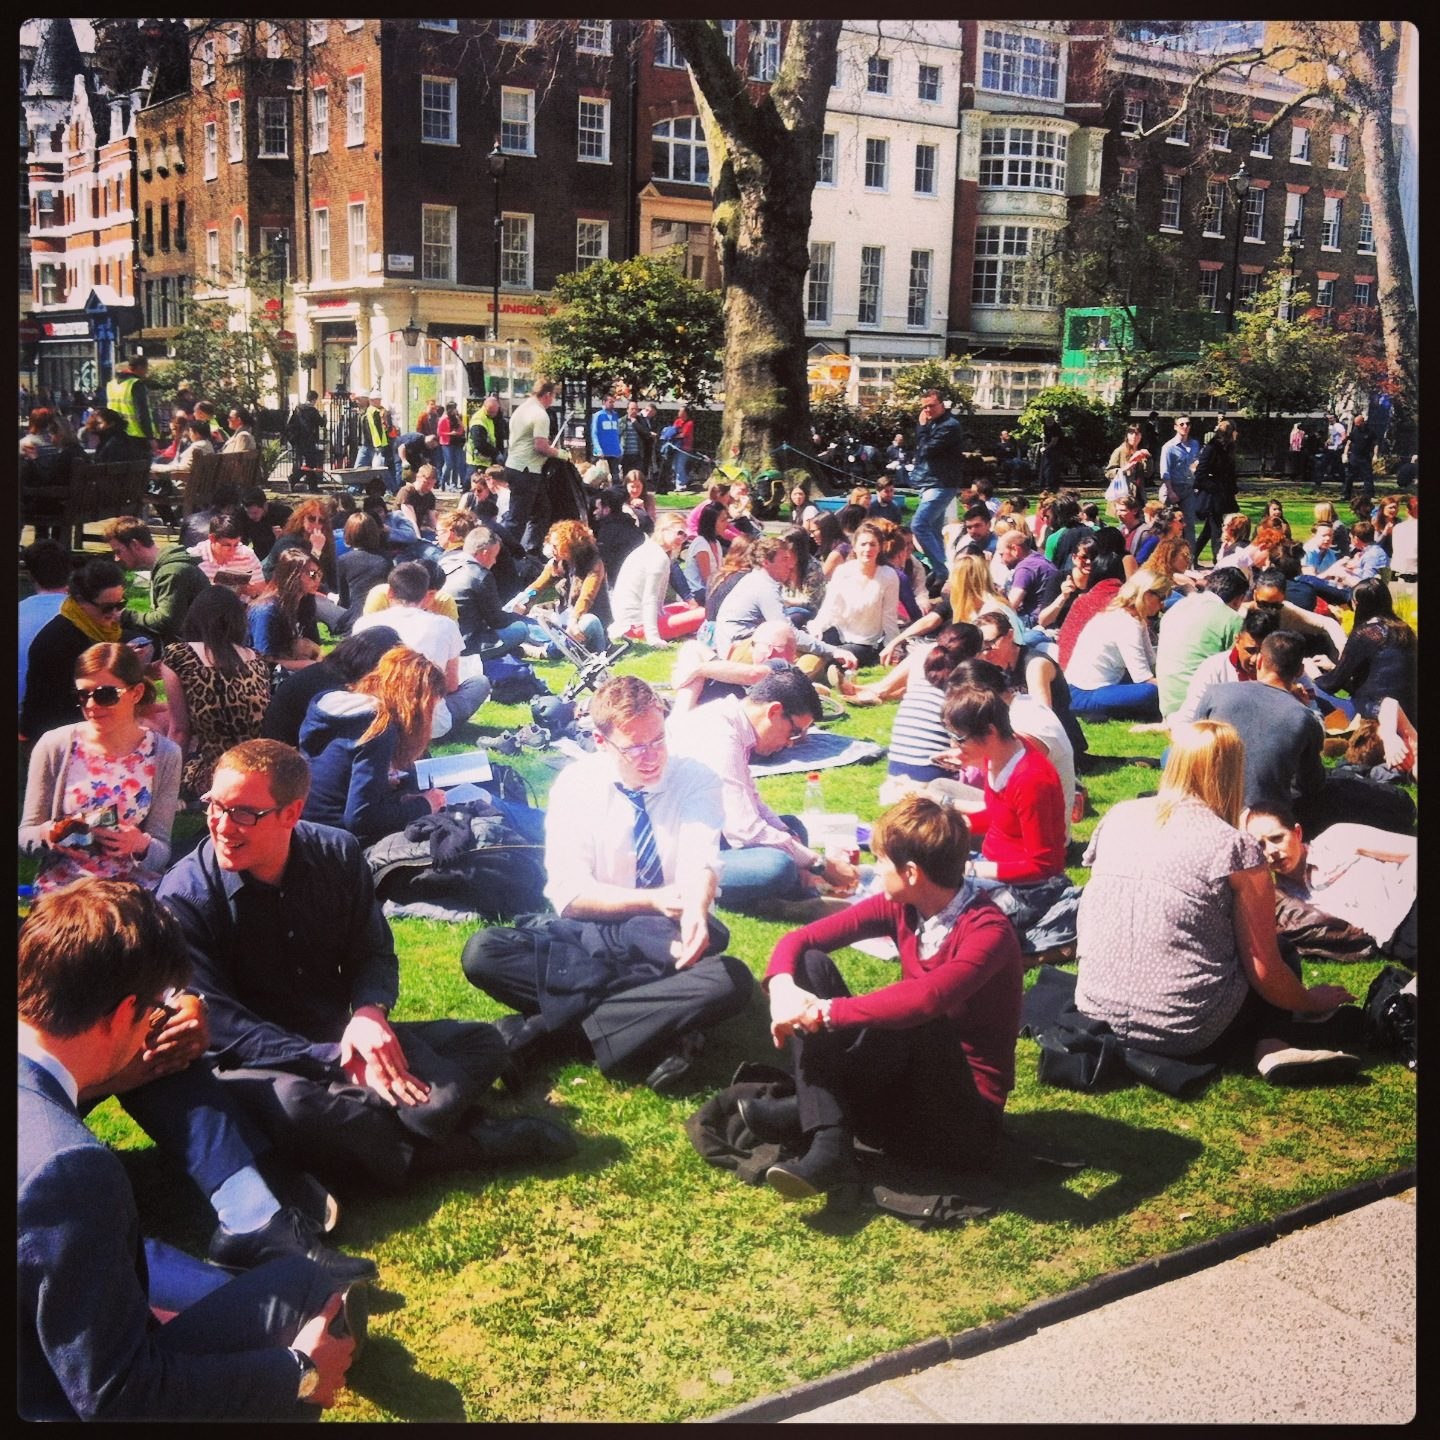 Soho Square, London